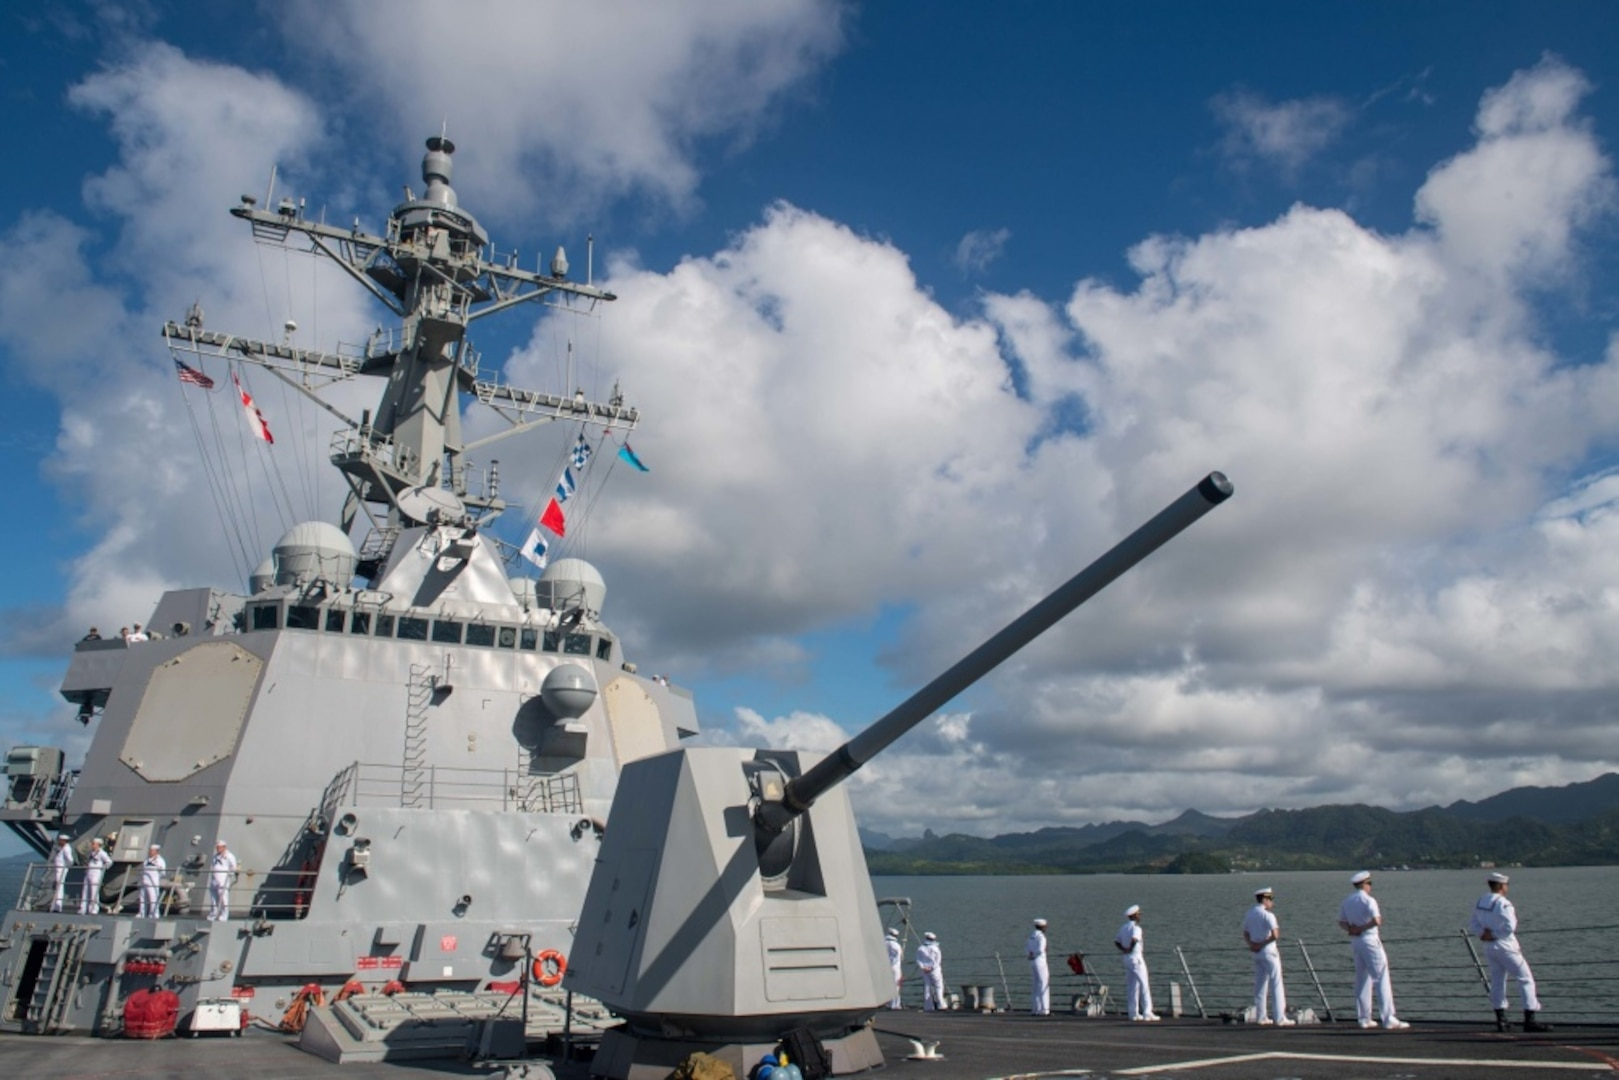 SUVA, Fiji (April 30, 2019) Sailors man the rails as the guided-missile destroyer USS Stockdale (DDG 106) arrives in Suva for a port visit. Stockdale is deployed to the U.S. 7th Fleet area of operations in support of security and stability in the Indo-Pacific region. (U.S. Navy photo by Mass Communication Specialist 2nd Class Abigayle Lutz)